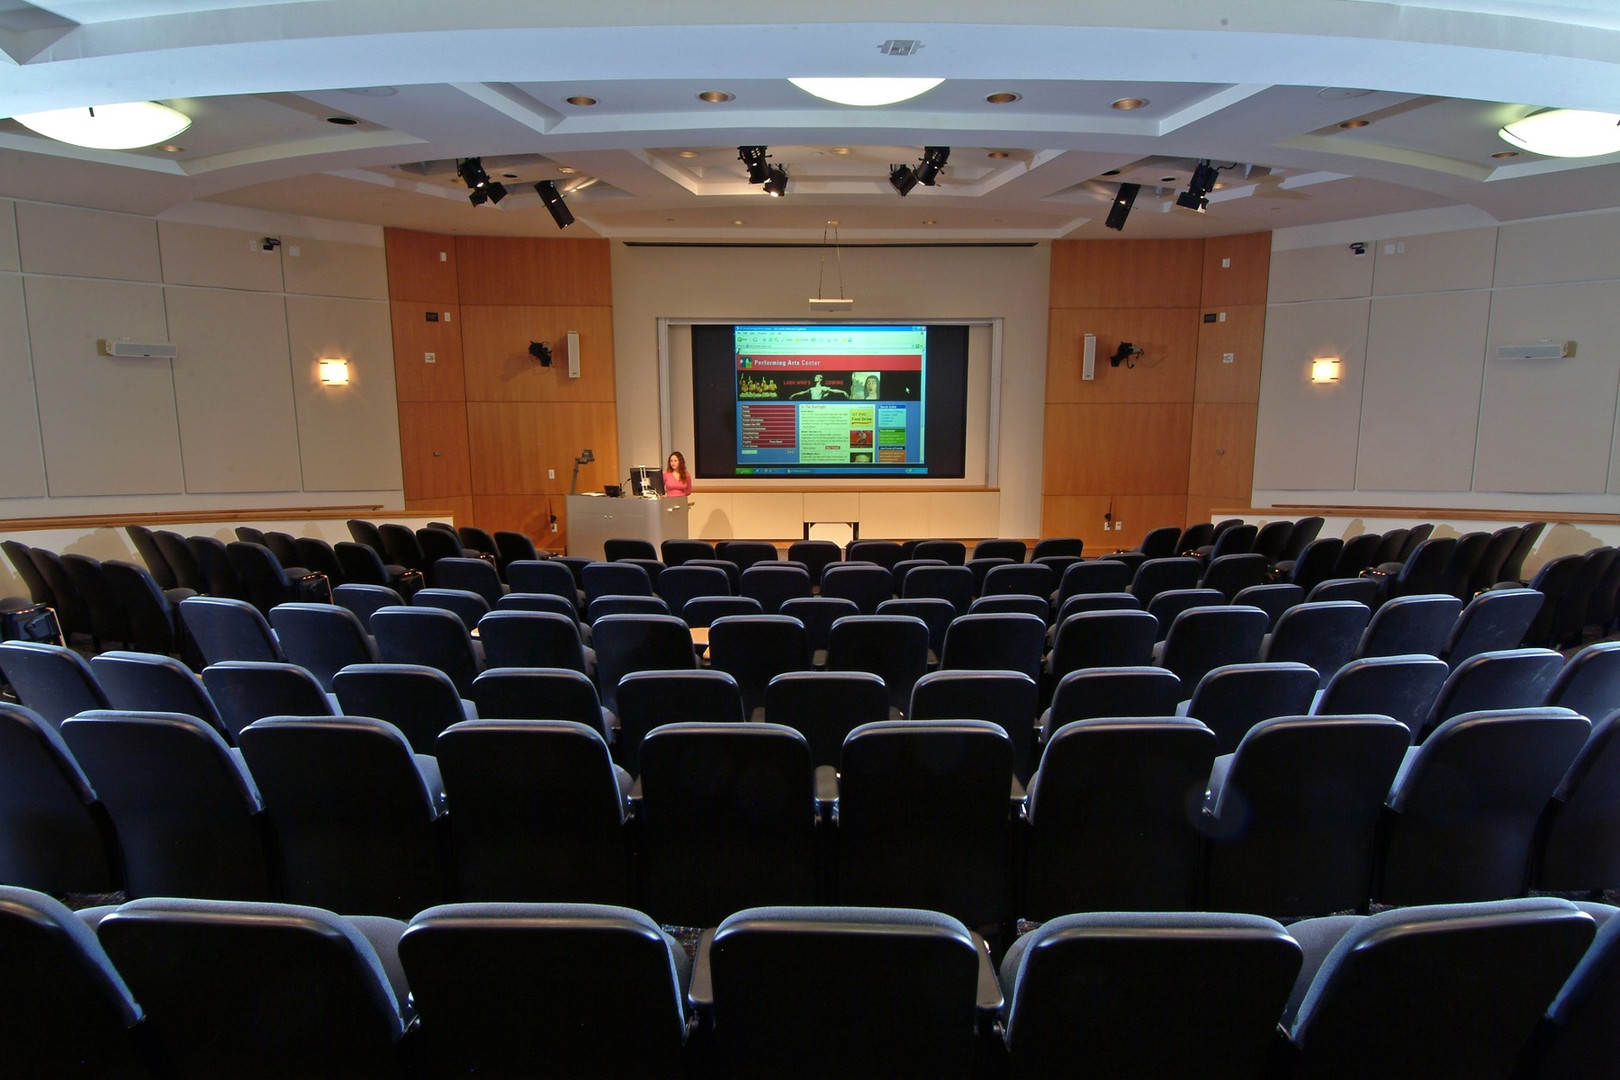 auditorium-meeting-audience-theatre-conf